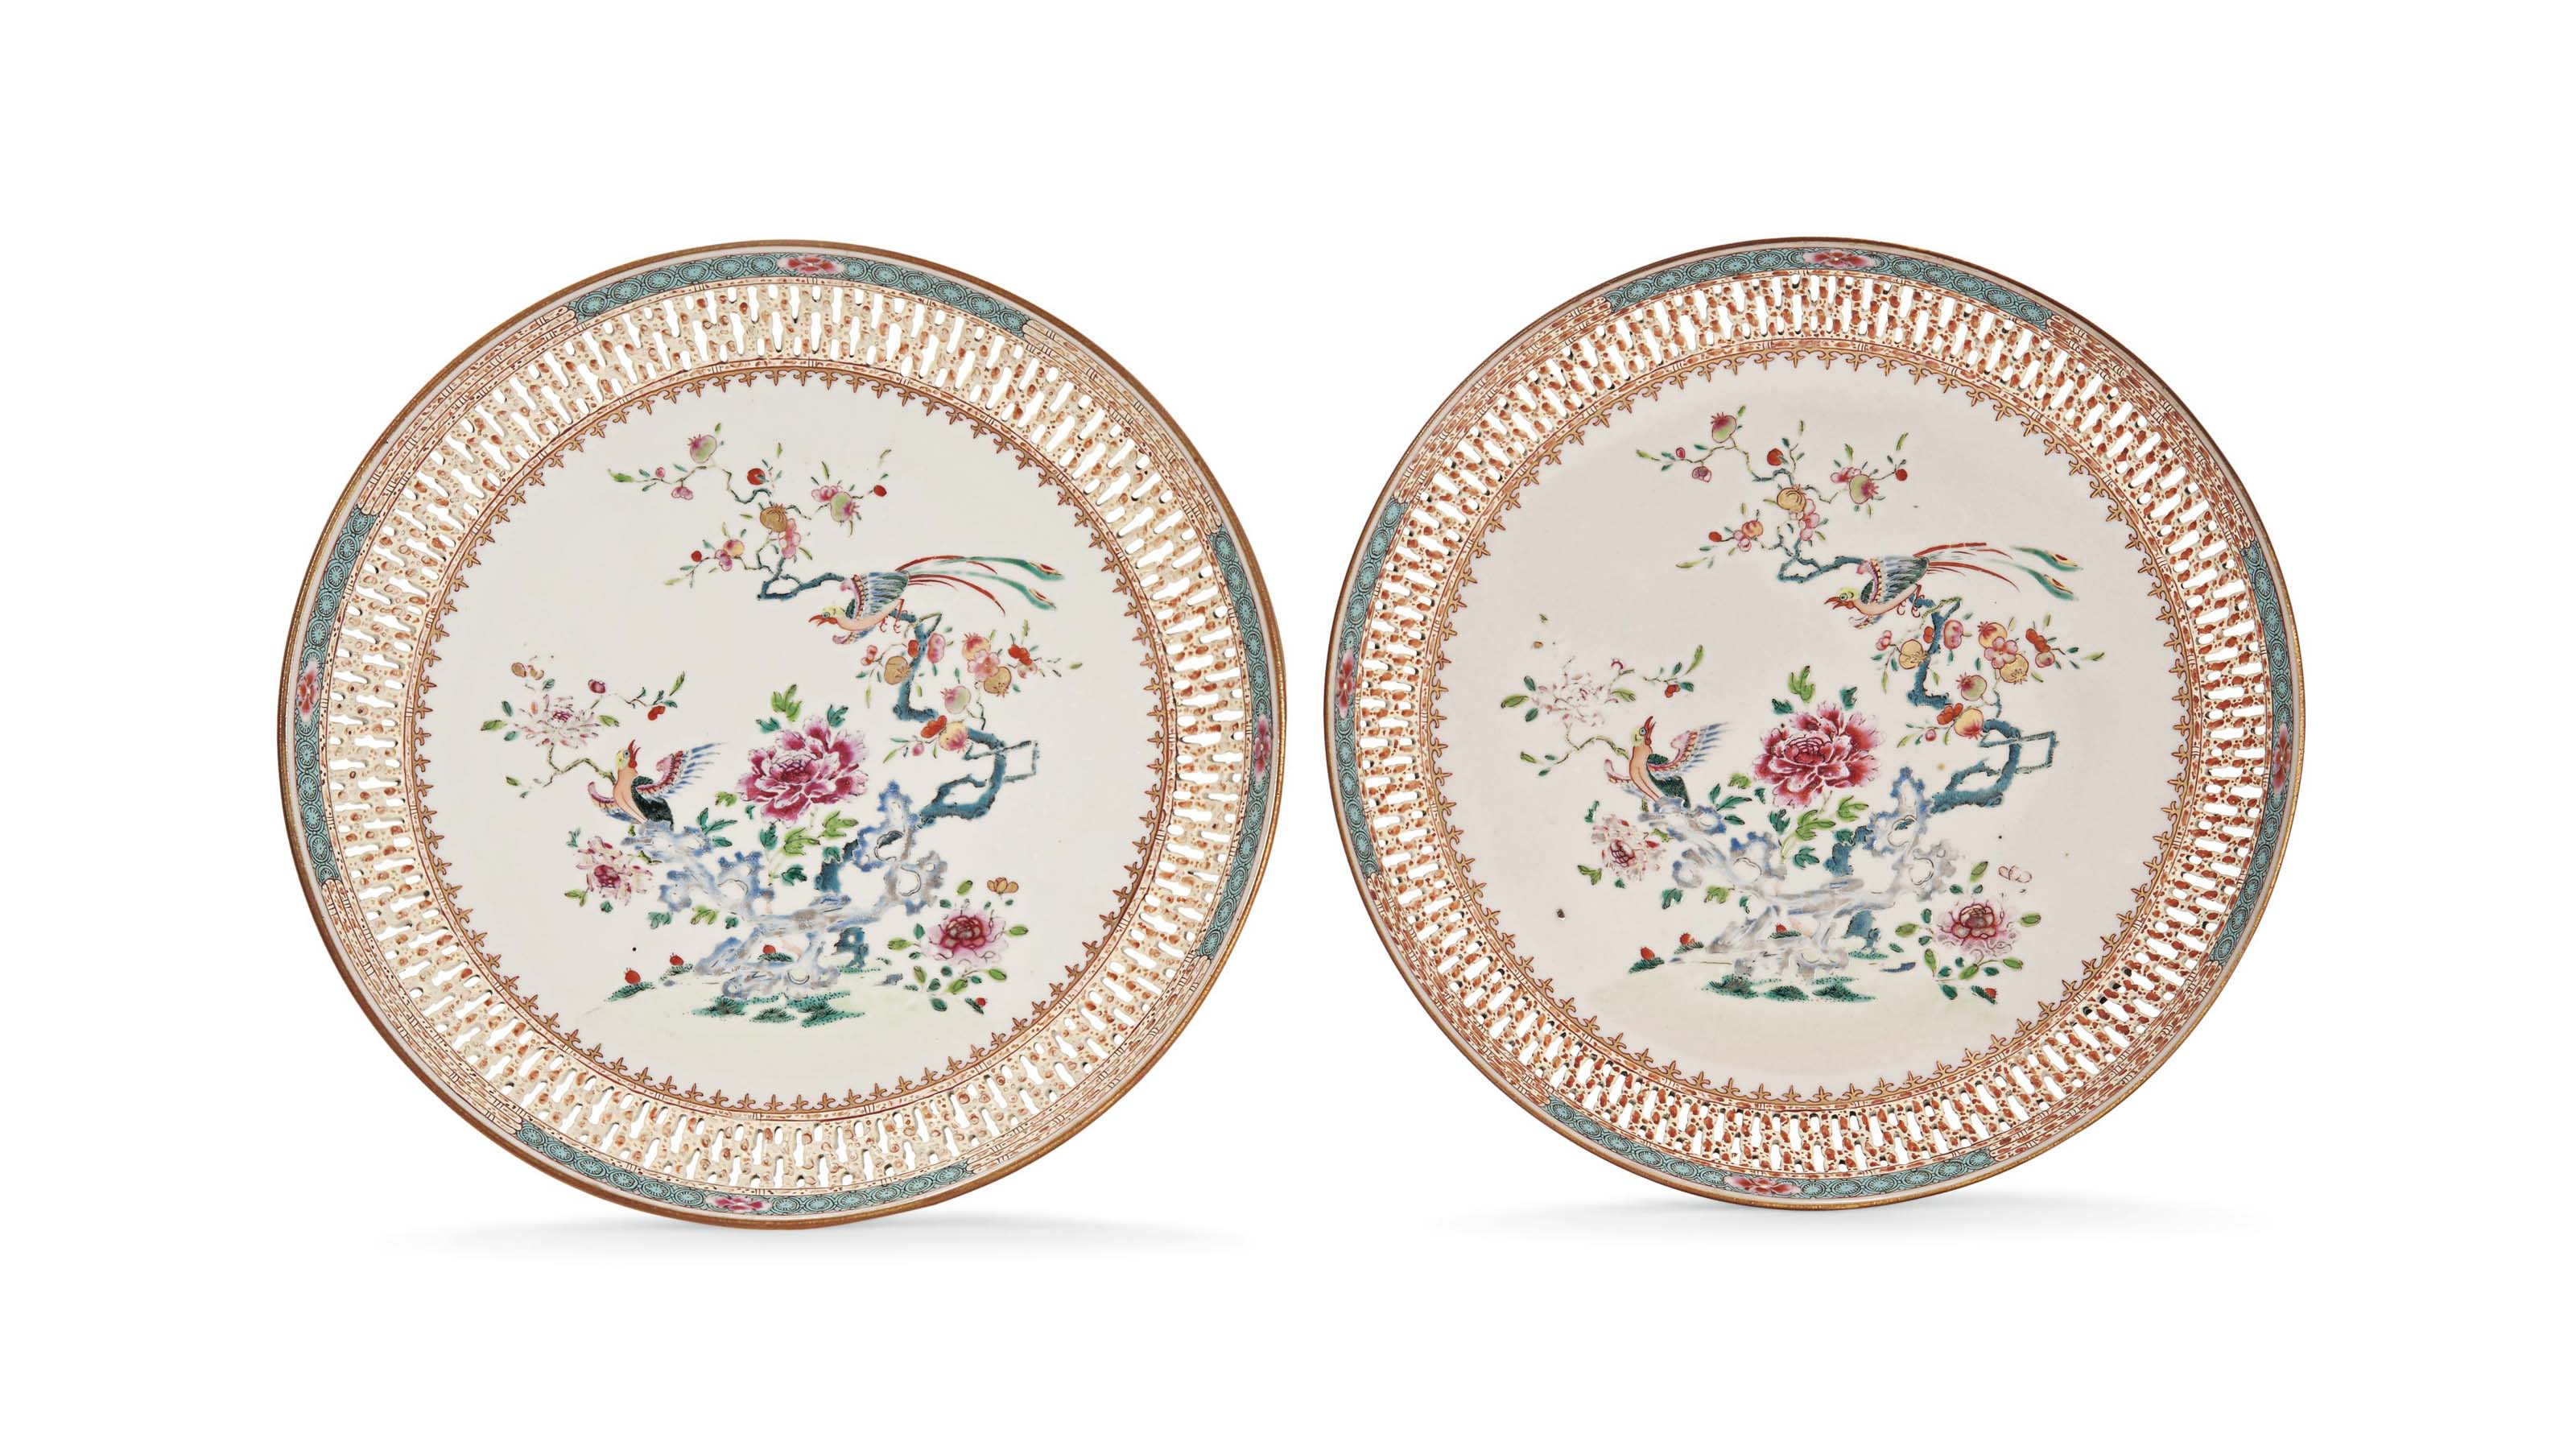 A PAIR OF FAMILLE ROSE RETICUL